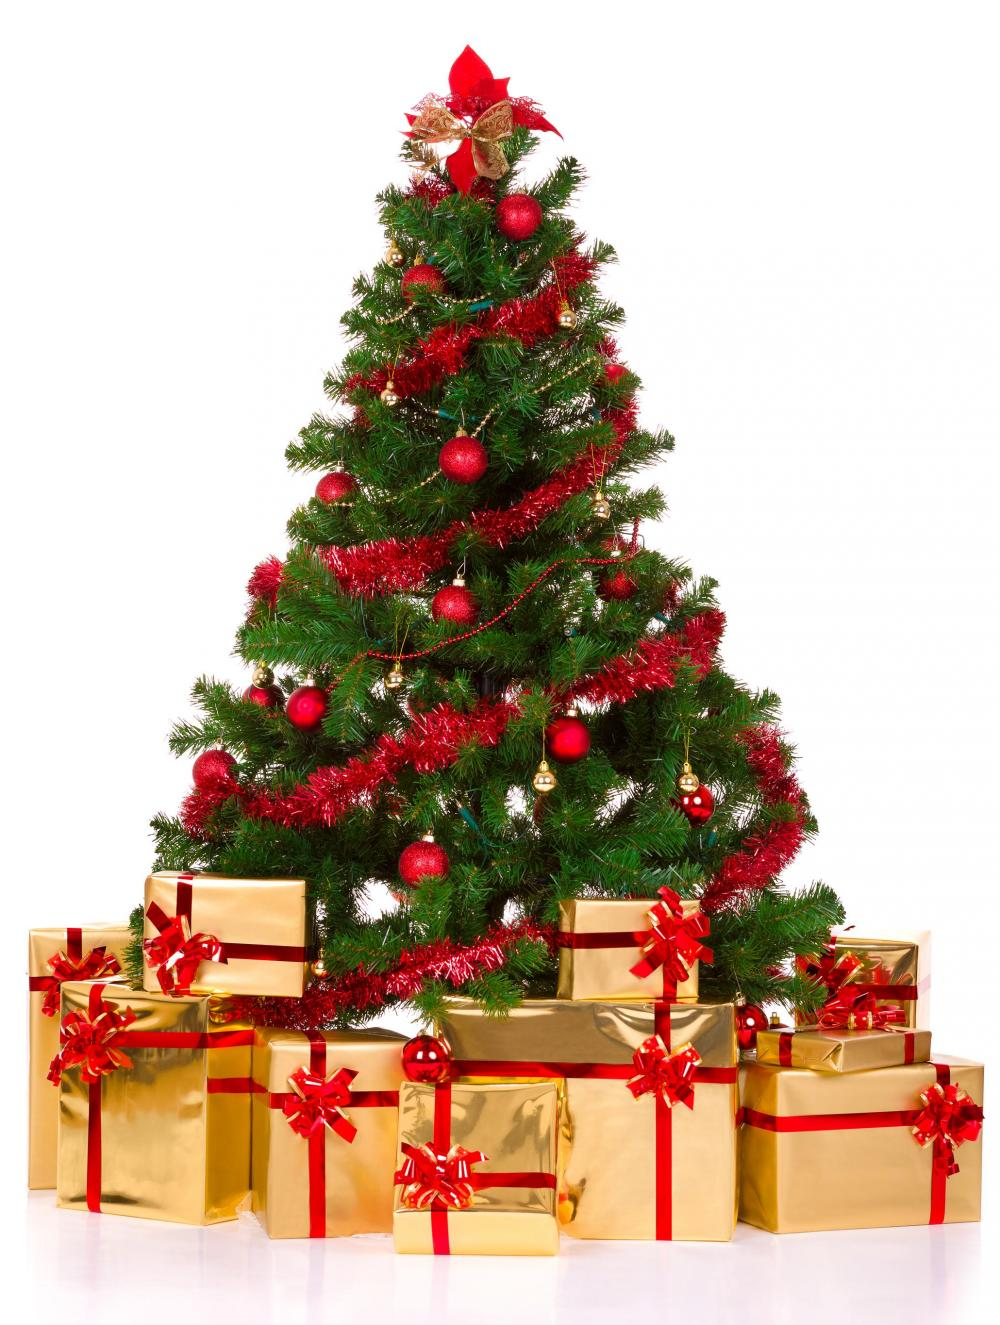 Christmas Tree Tips - Consett Magazine - Consett News for Consett ...